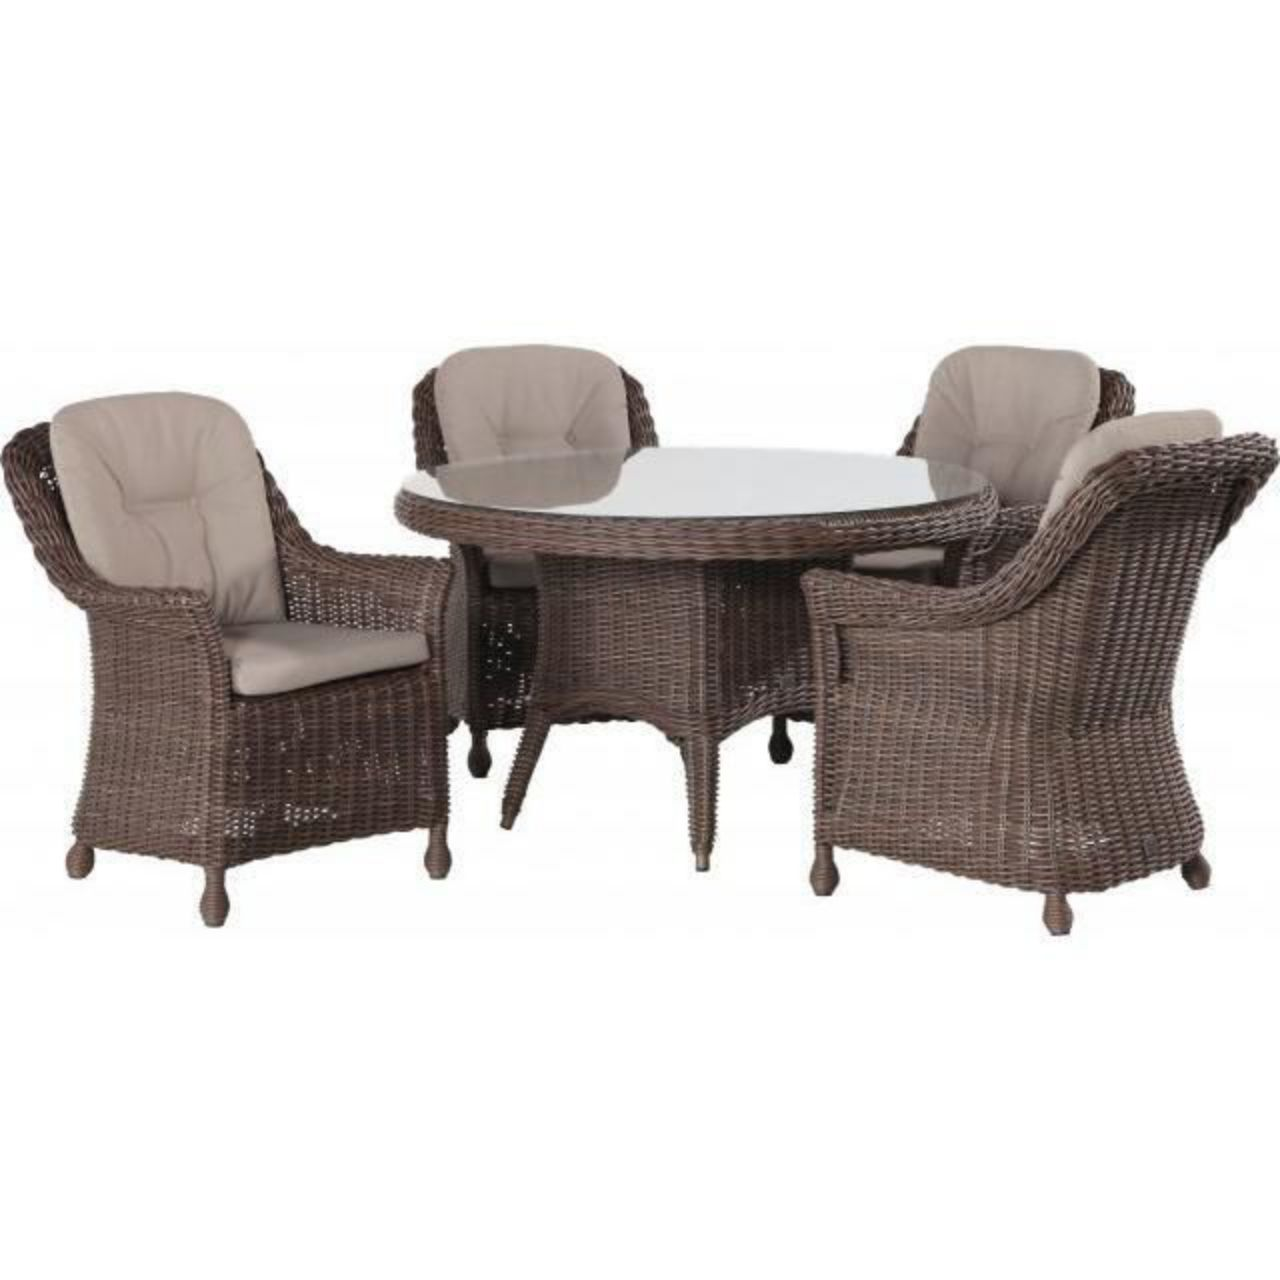 4 seasons outdoor madoera dining sale latour. Black Bedroom Furniture Sets. Home Design Ideas